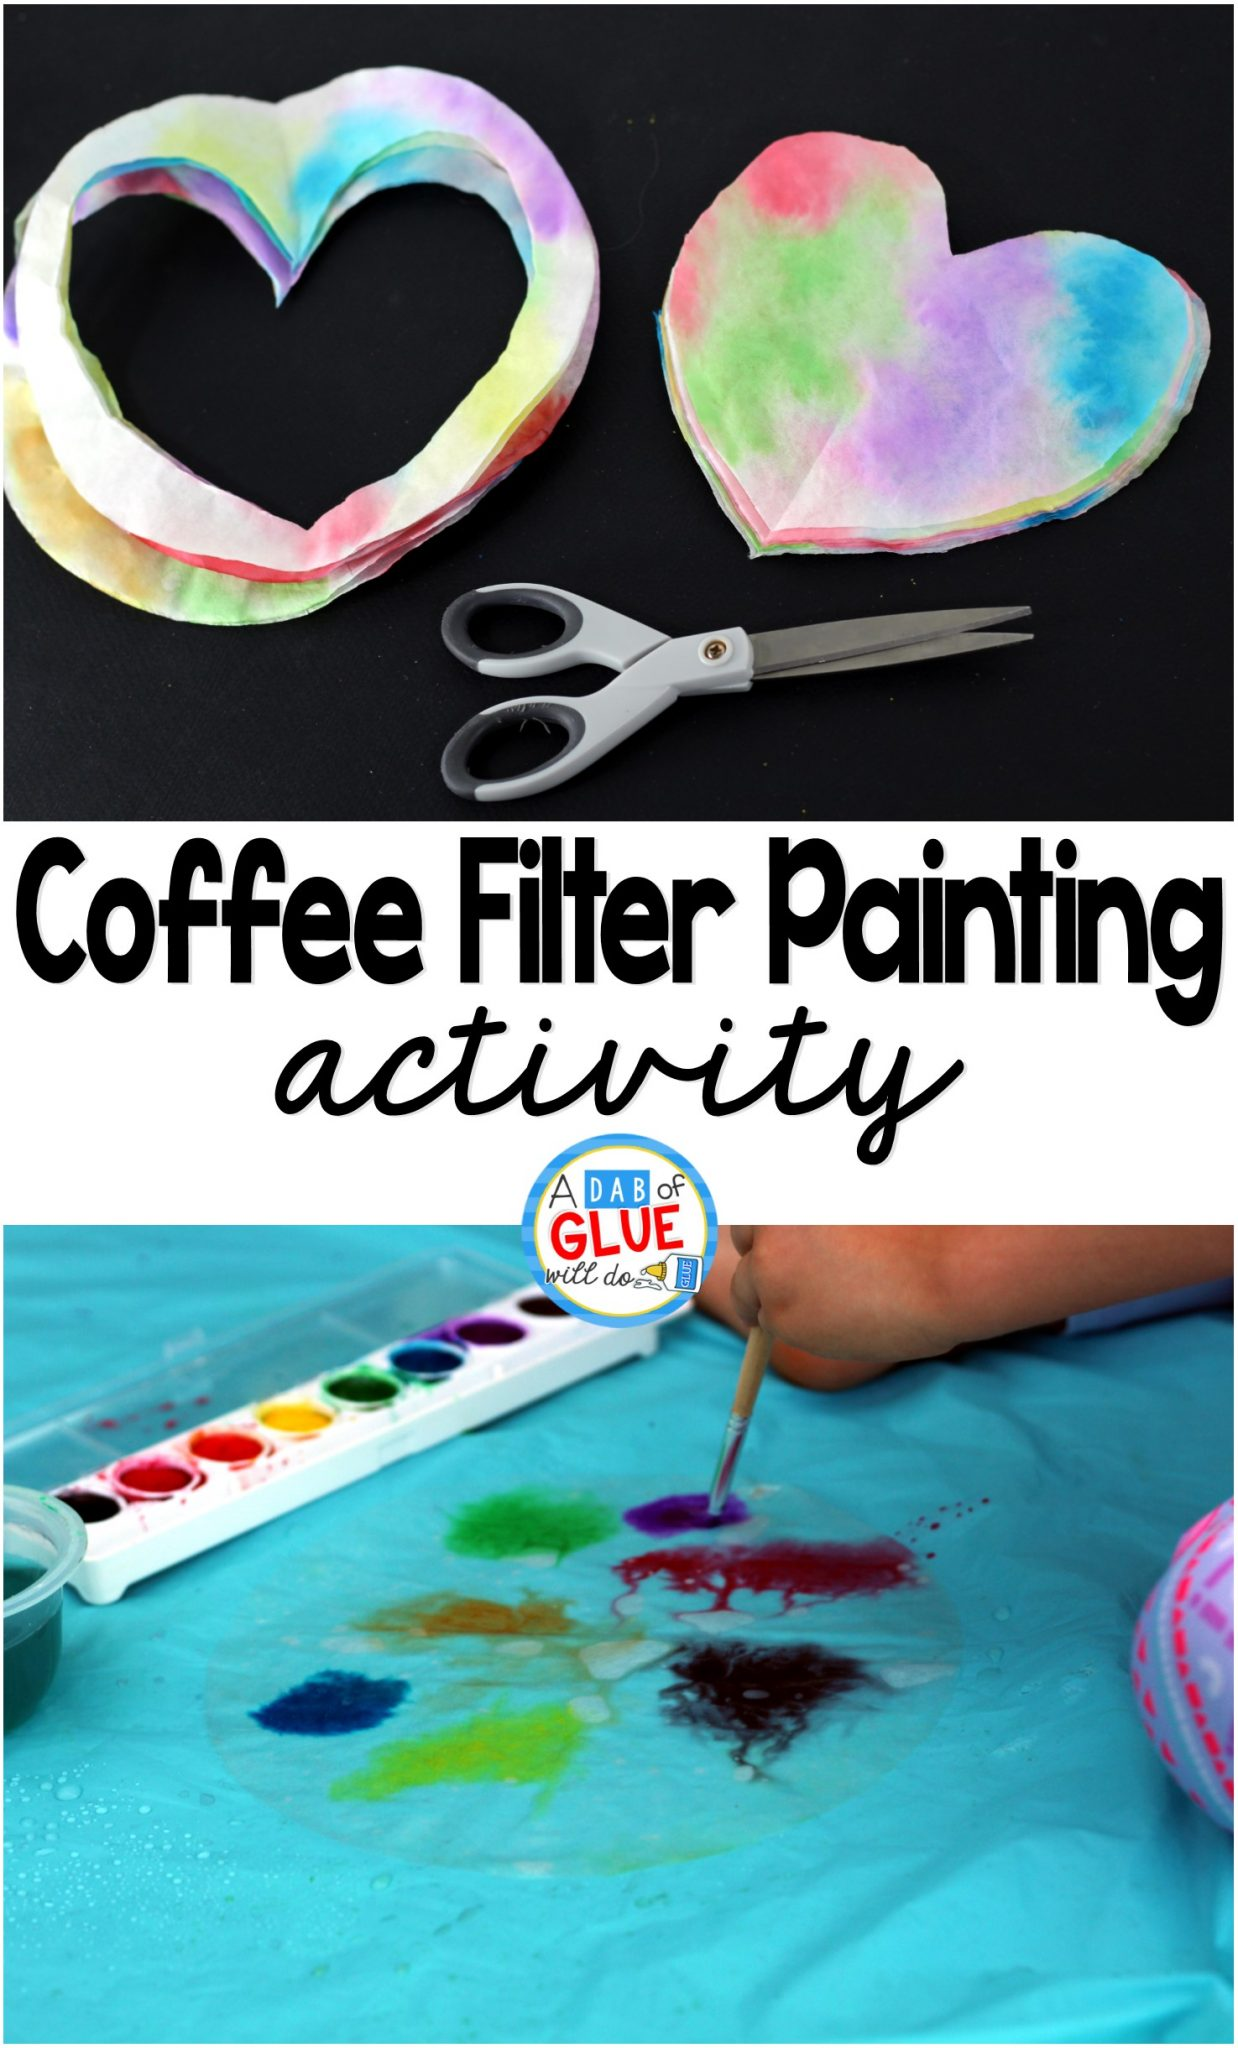 Coffee Filter Color Painting